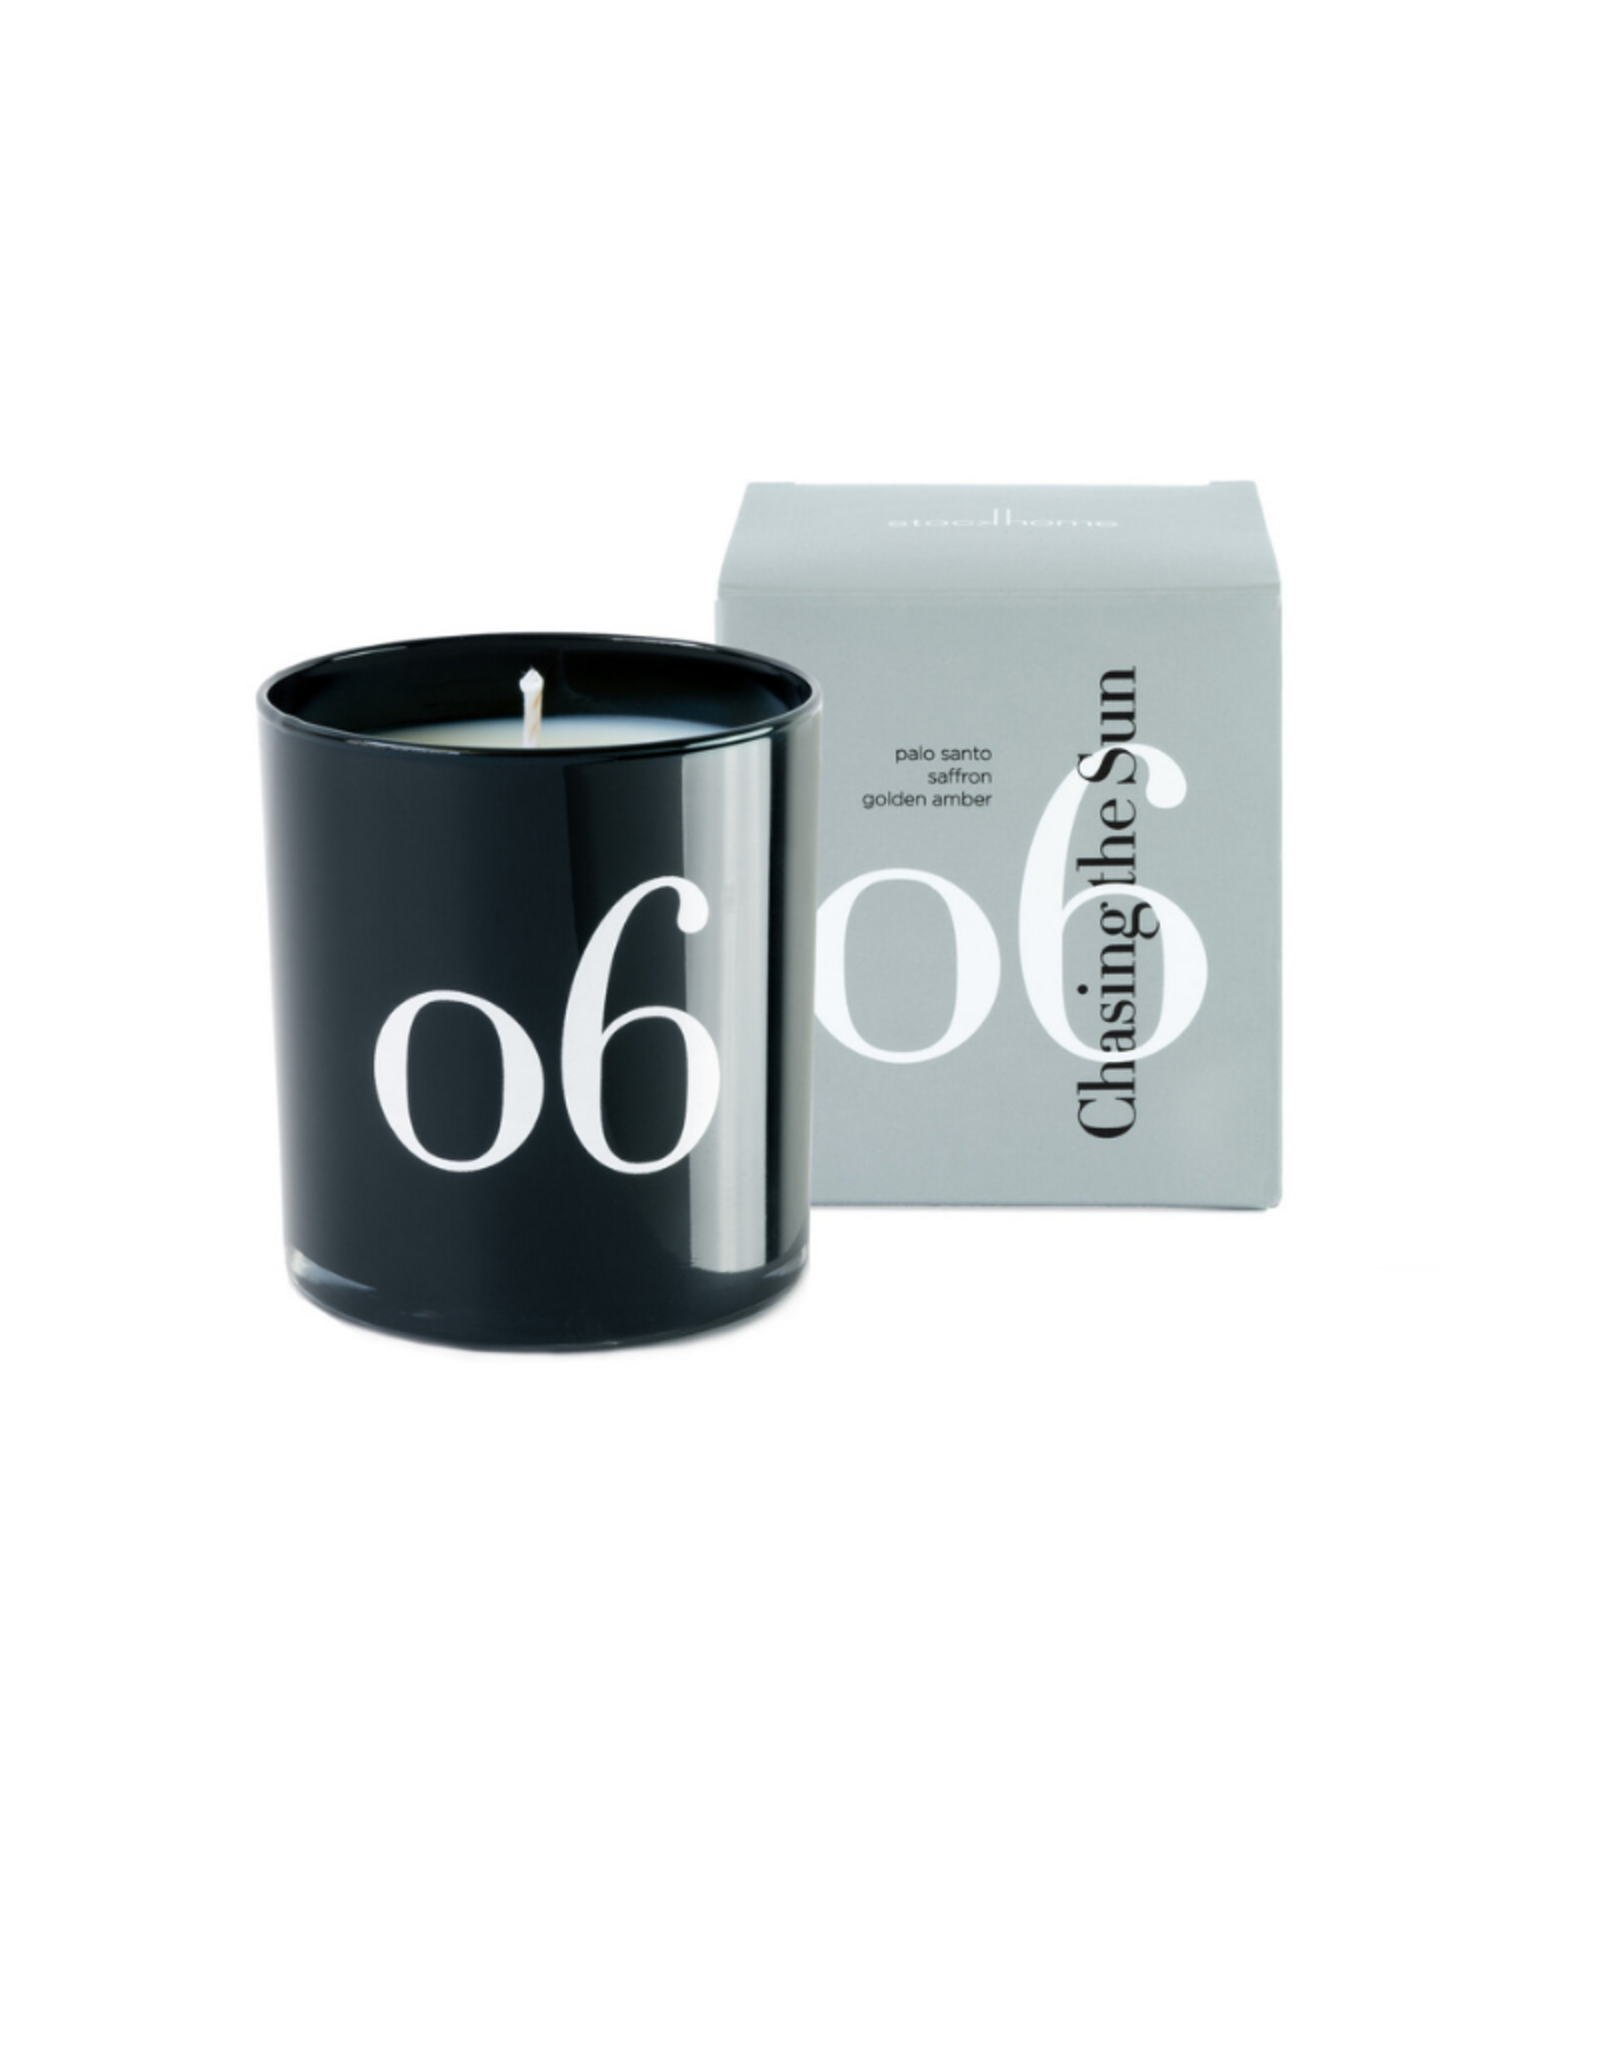 06 Chasing the Sun Candle